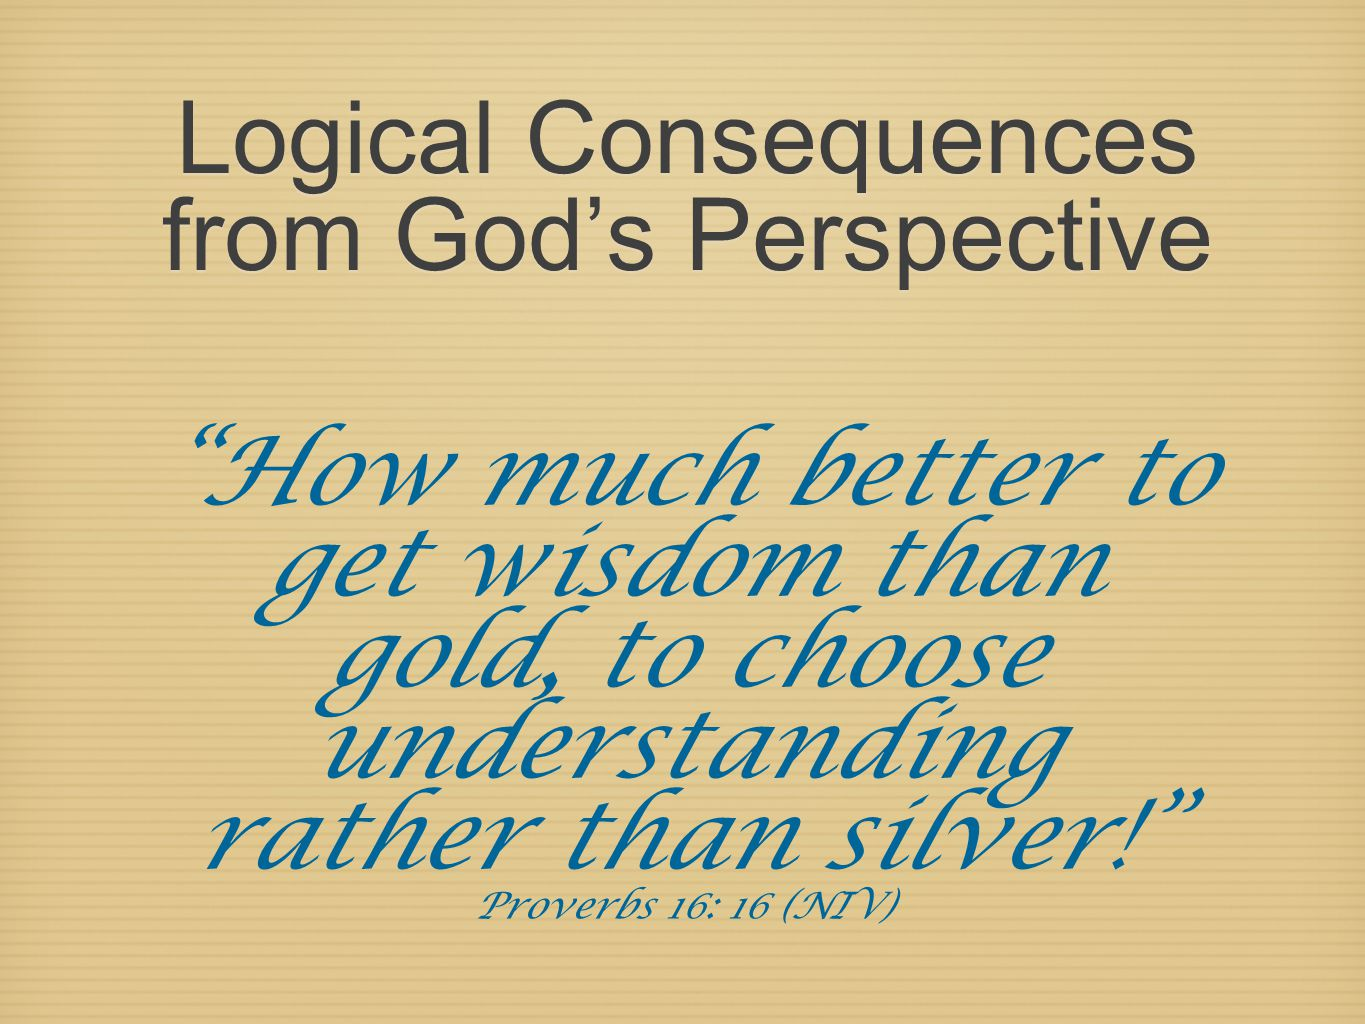 Logical Consequences from God's Perspective How much better to get wisdom than gold, to choose understanding rather than silver! Proverbs 16: 16 (NIV)